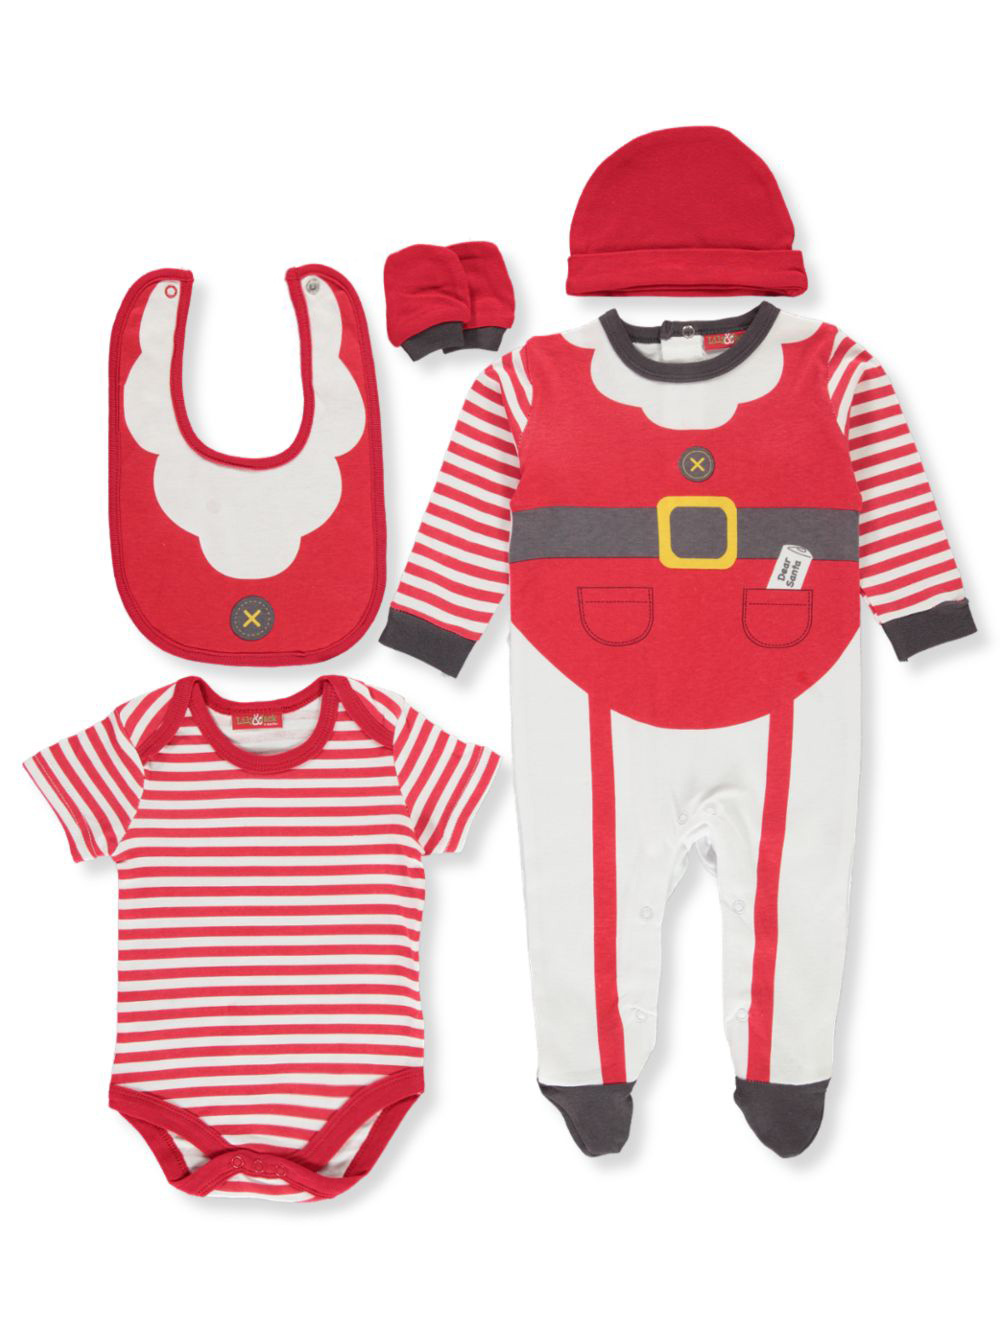 Unisex Baby Holiday 6-Piece Layette Set